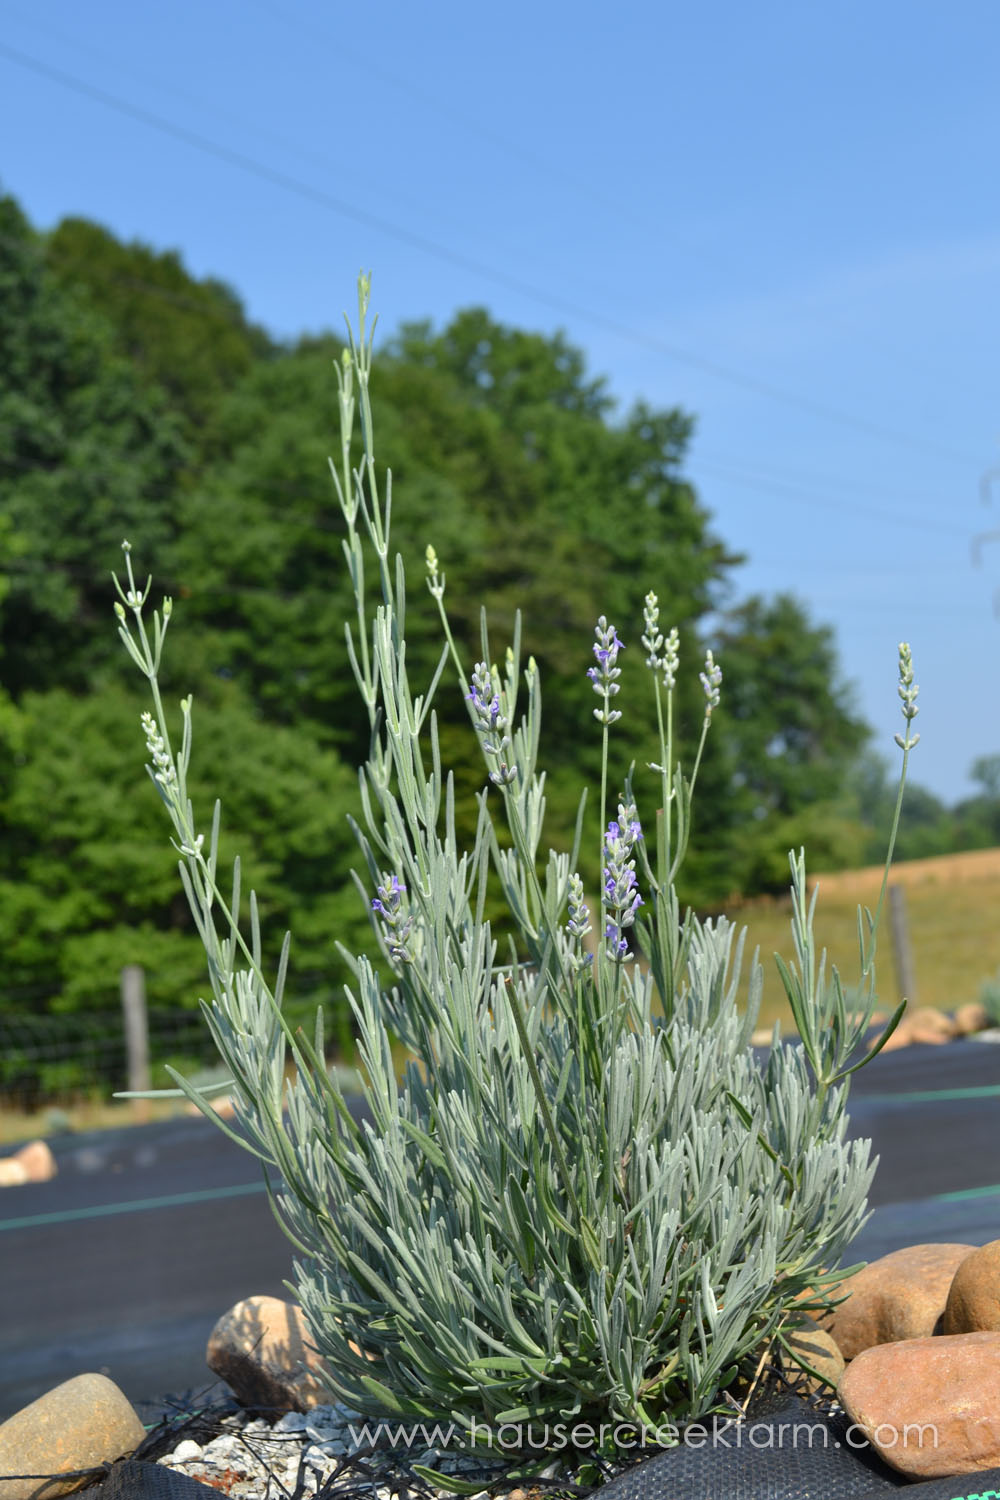 lavender-plant-blooming-in-large-bed-with-rocks-and-green-trees-DSC_0526.jpg